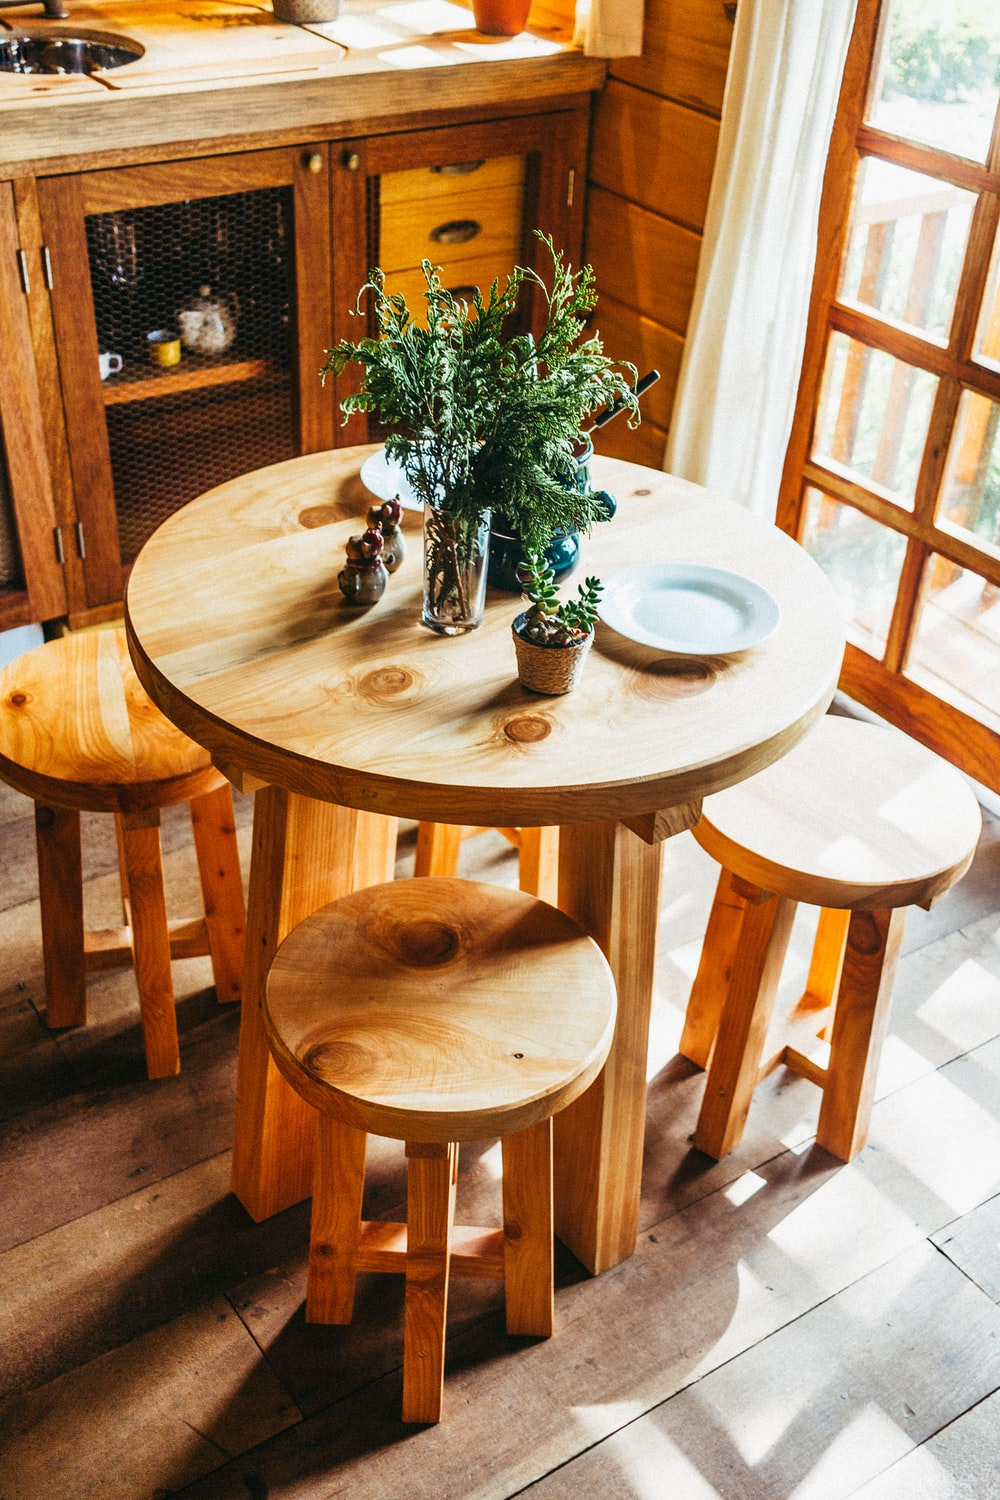 plants on brown wooden table indoors